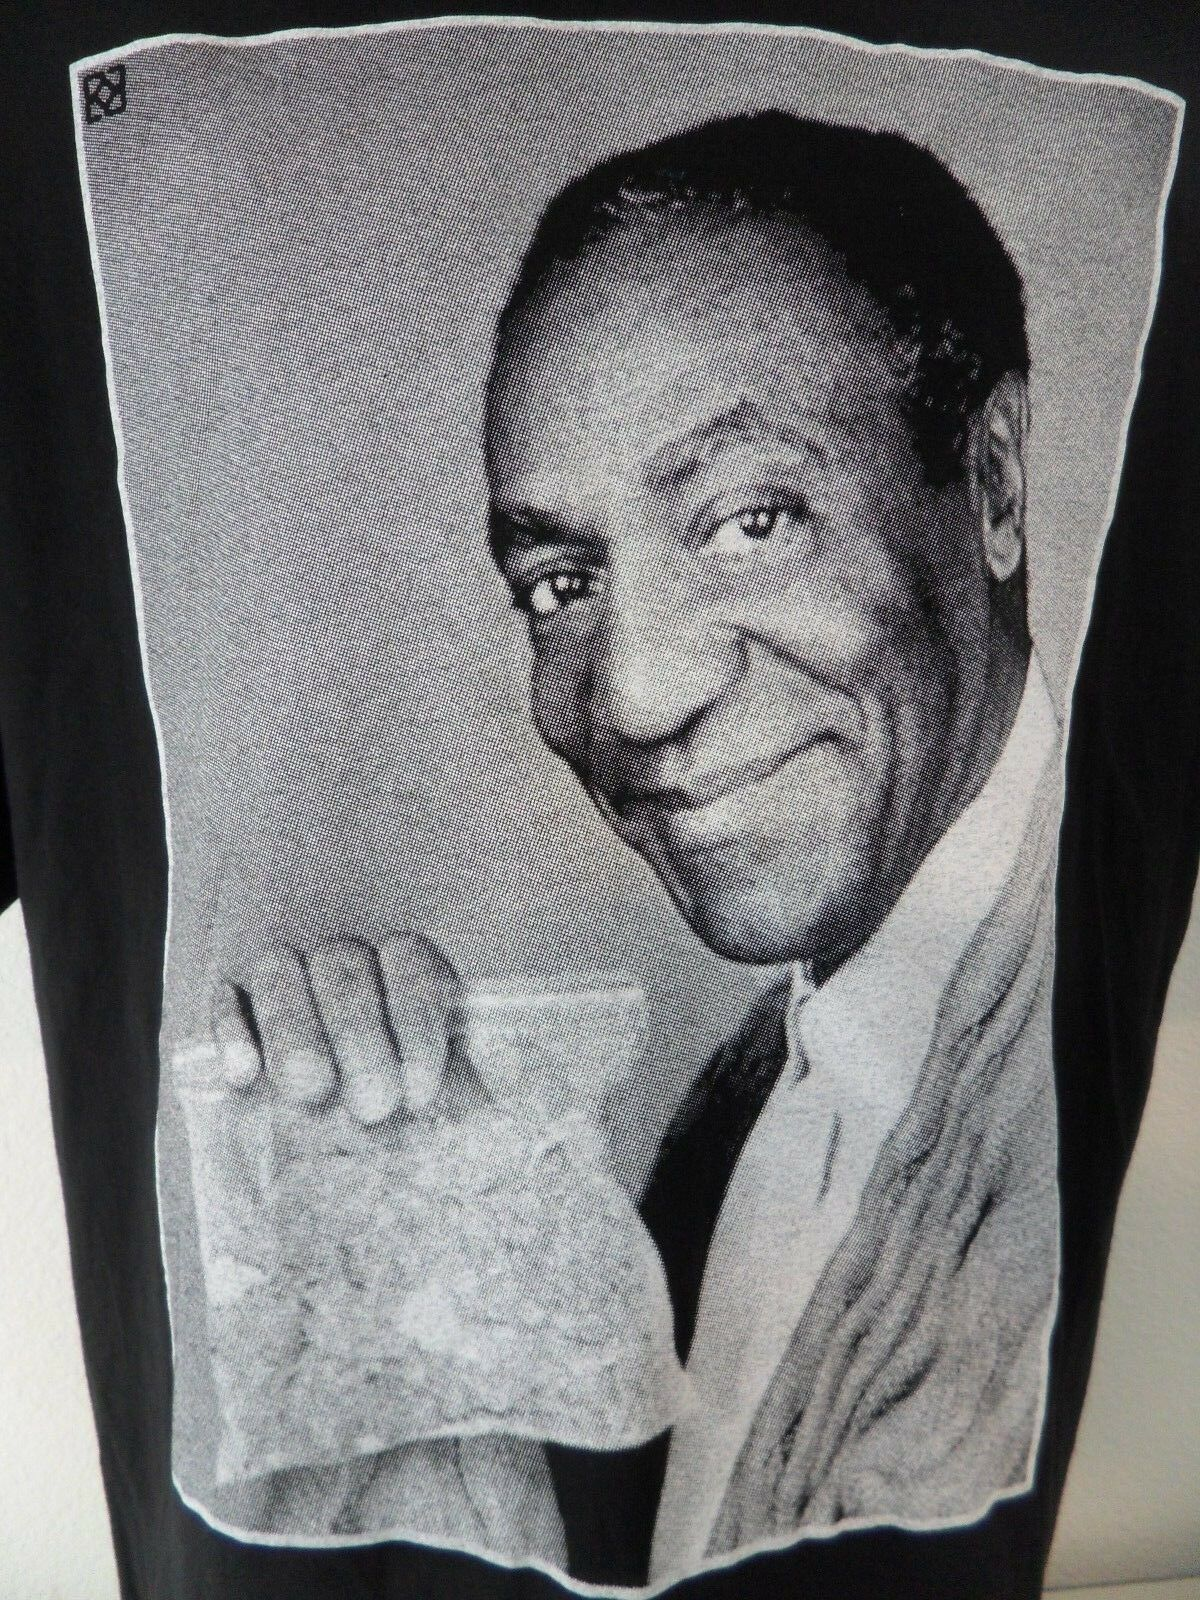 Bill Cosby Holding Bag Of Dope Weed XXL T Shirt Comedian Comedy 8103 Clothing